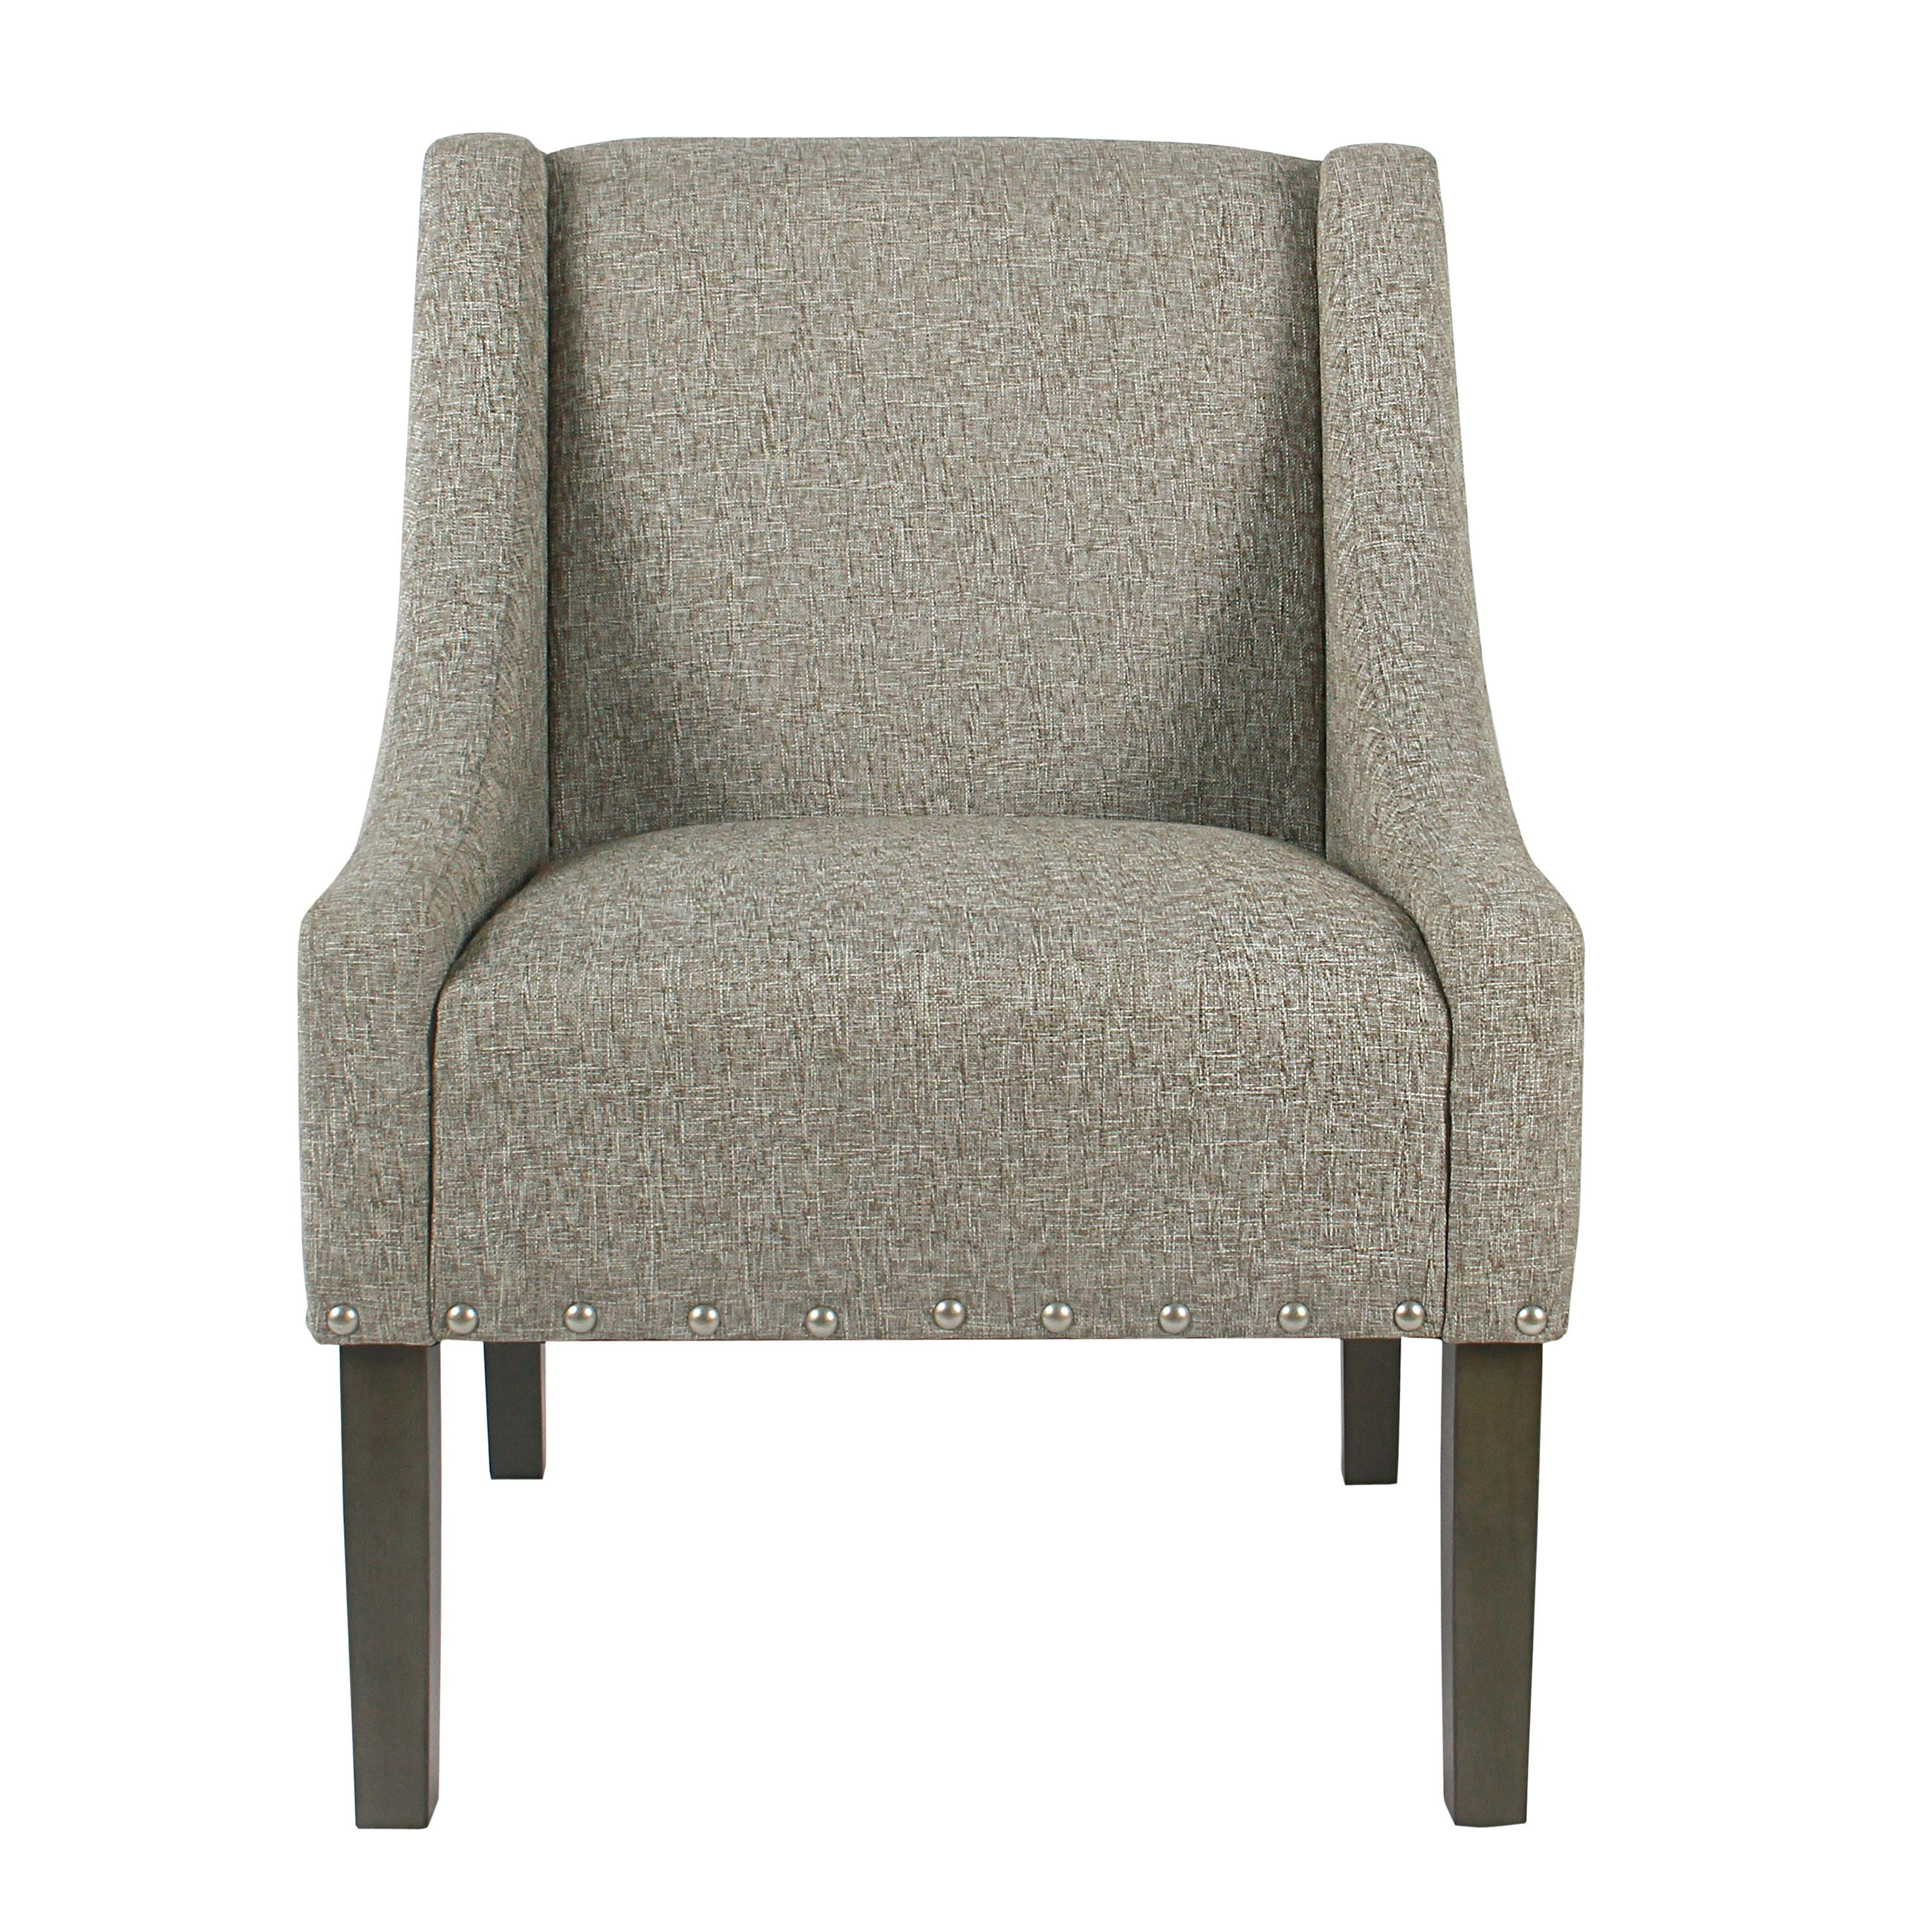 Accent Chair With Lots Of Color: HomePop Modern Swoop Accent Chair With Nailhead Trim